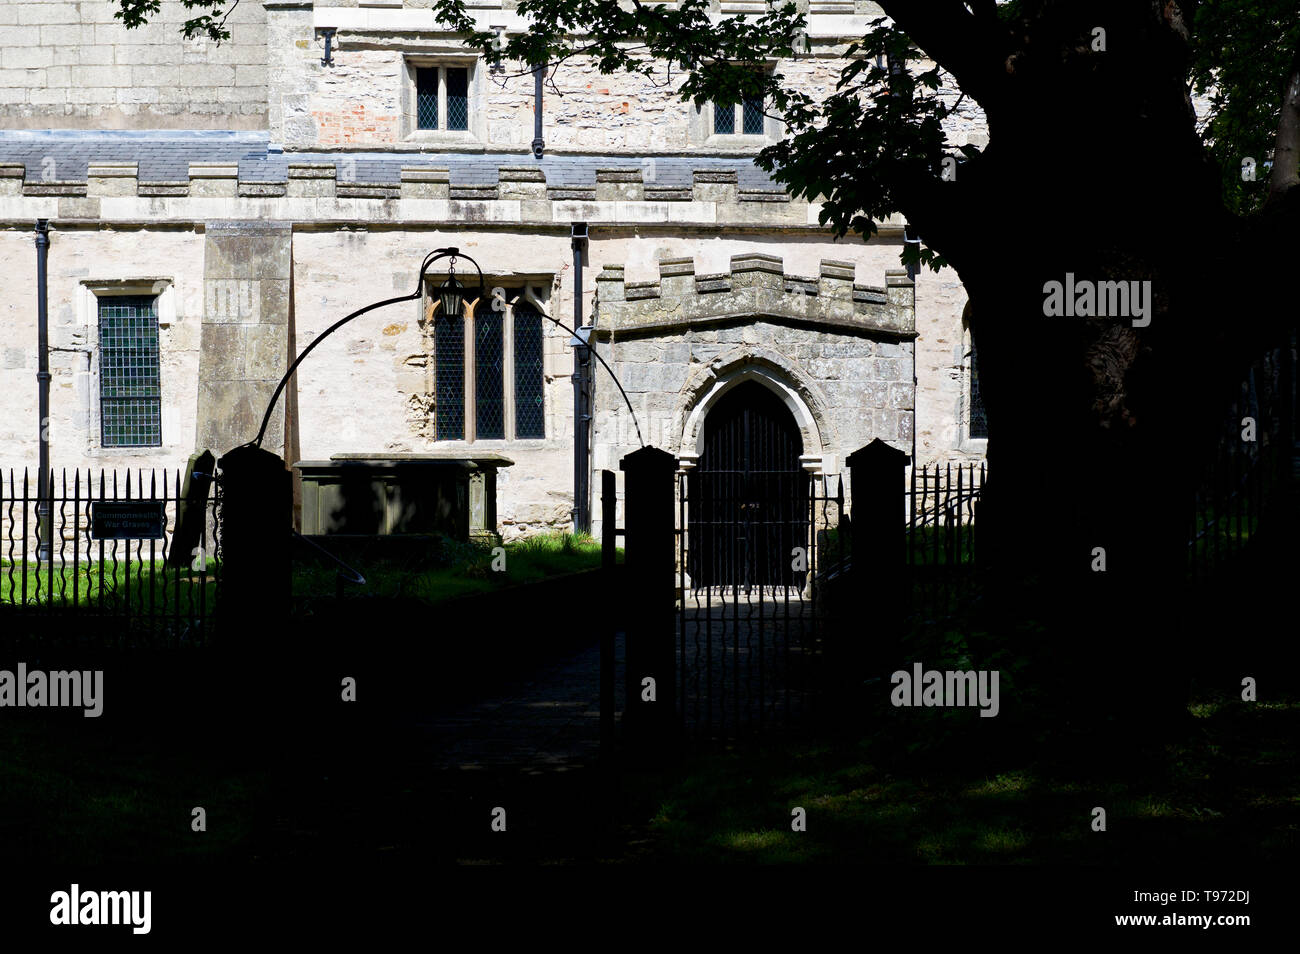 St Andrew's Church, Epworth,North Lincolnshire, England UK - Stock Image